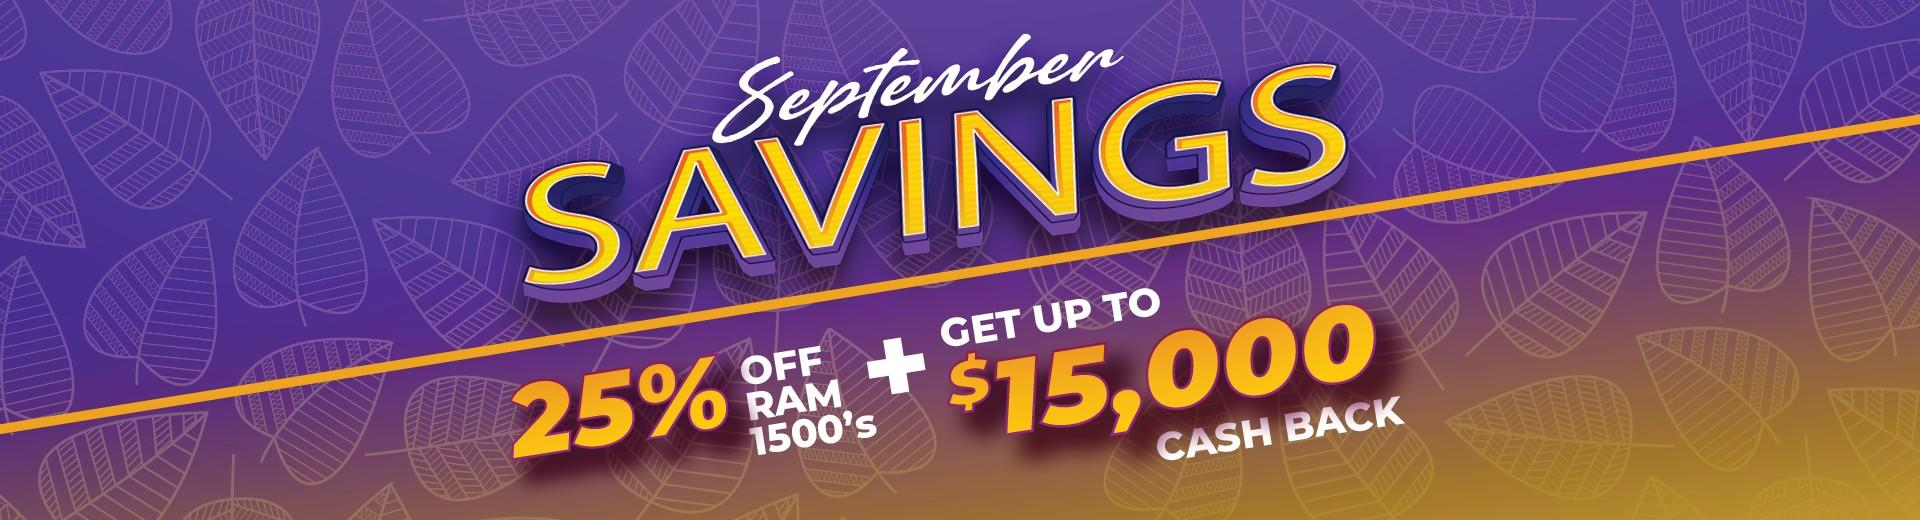 September Savings at Airdrie Chrysler Dodge Jeep Ram in 139 East Lake Crescent